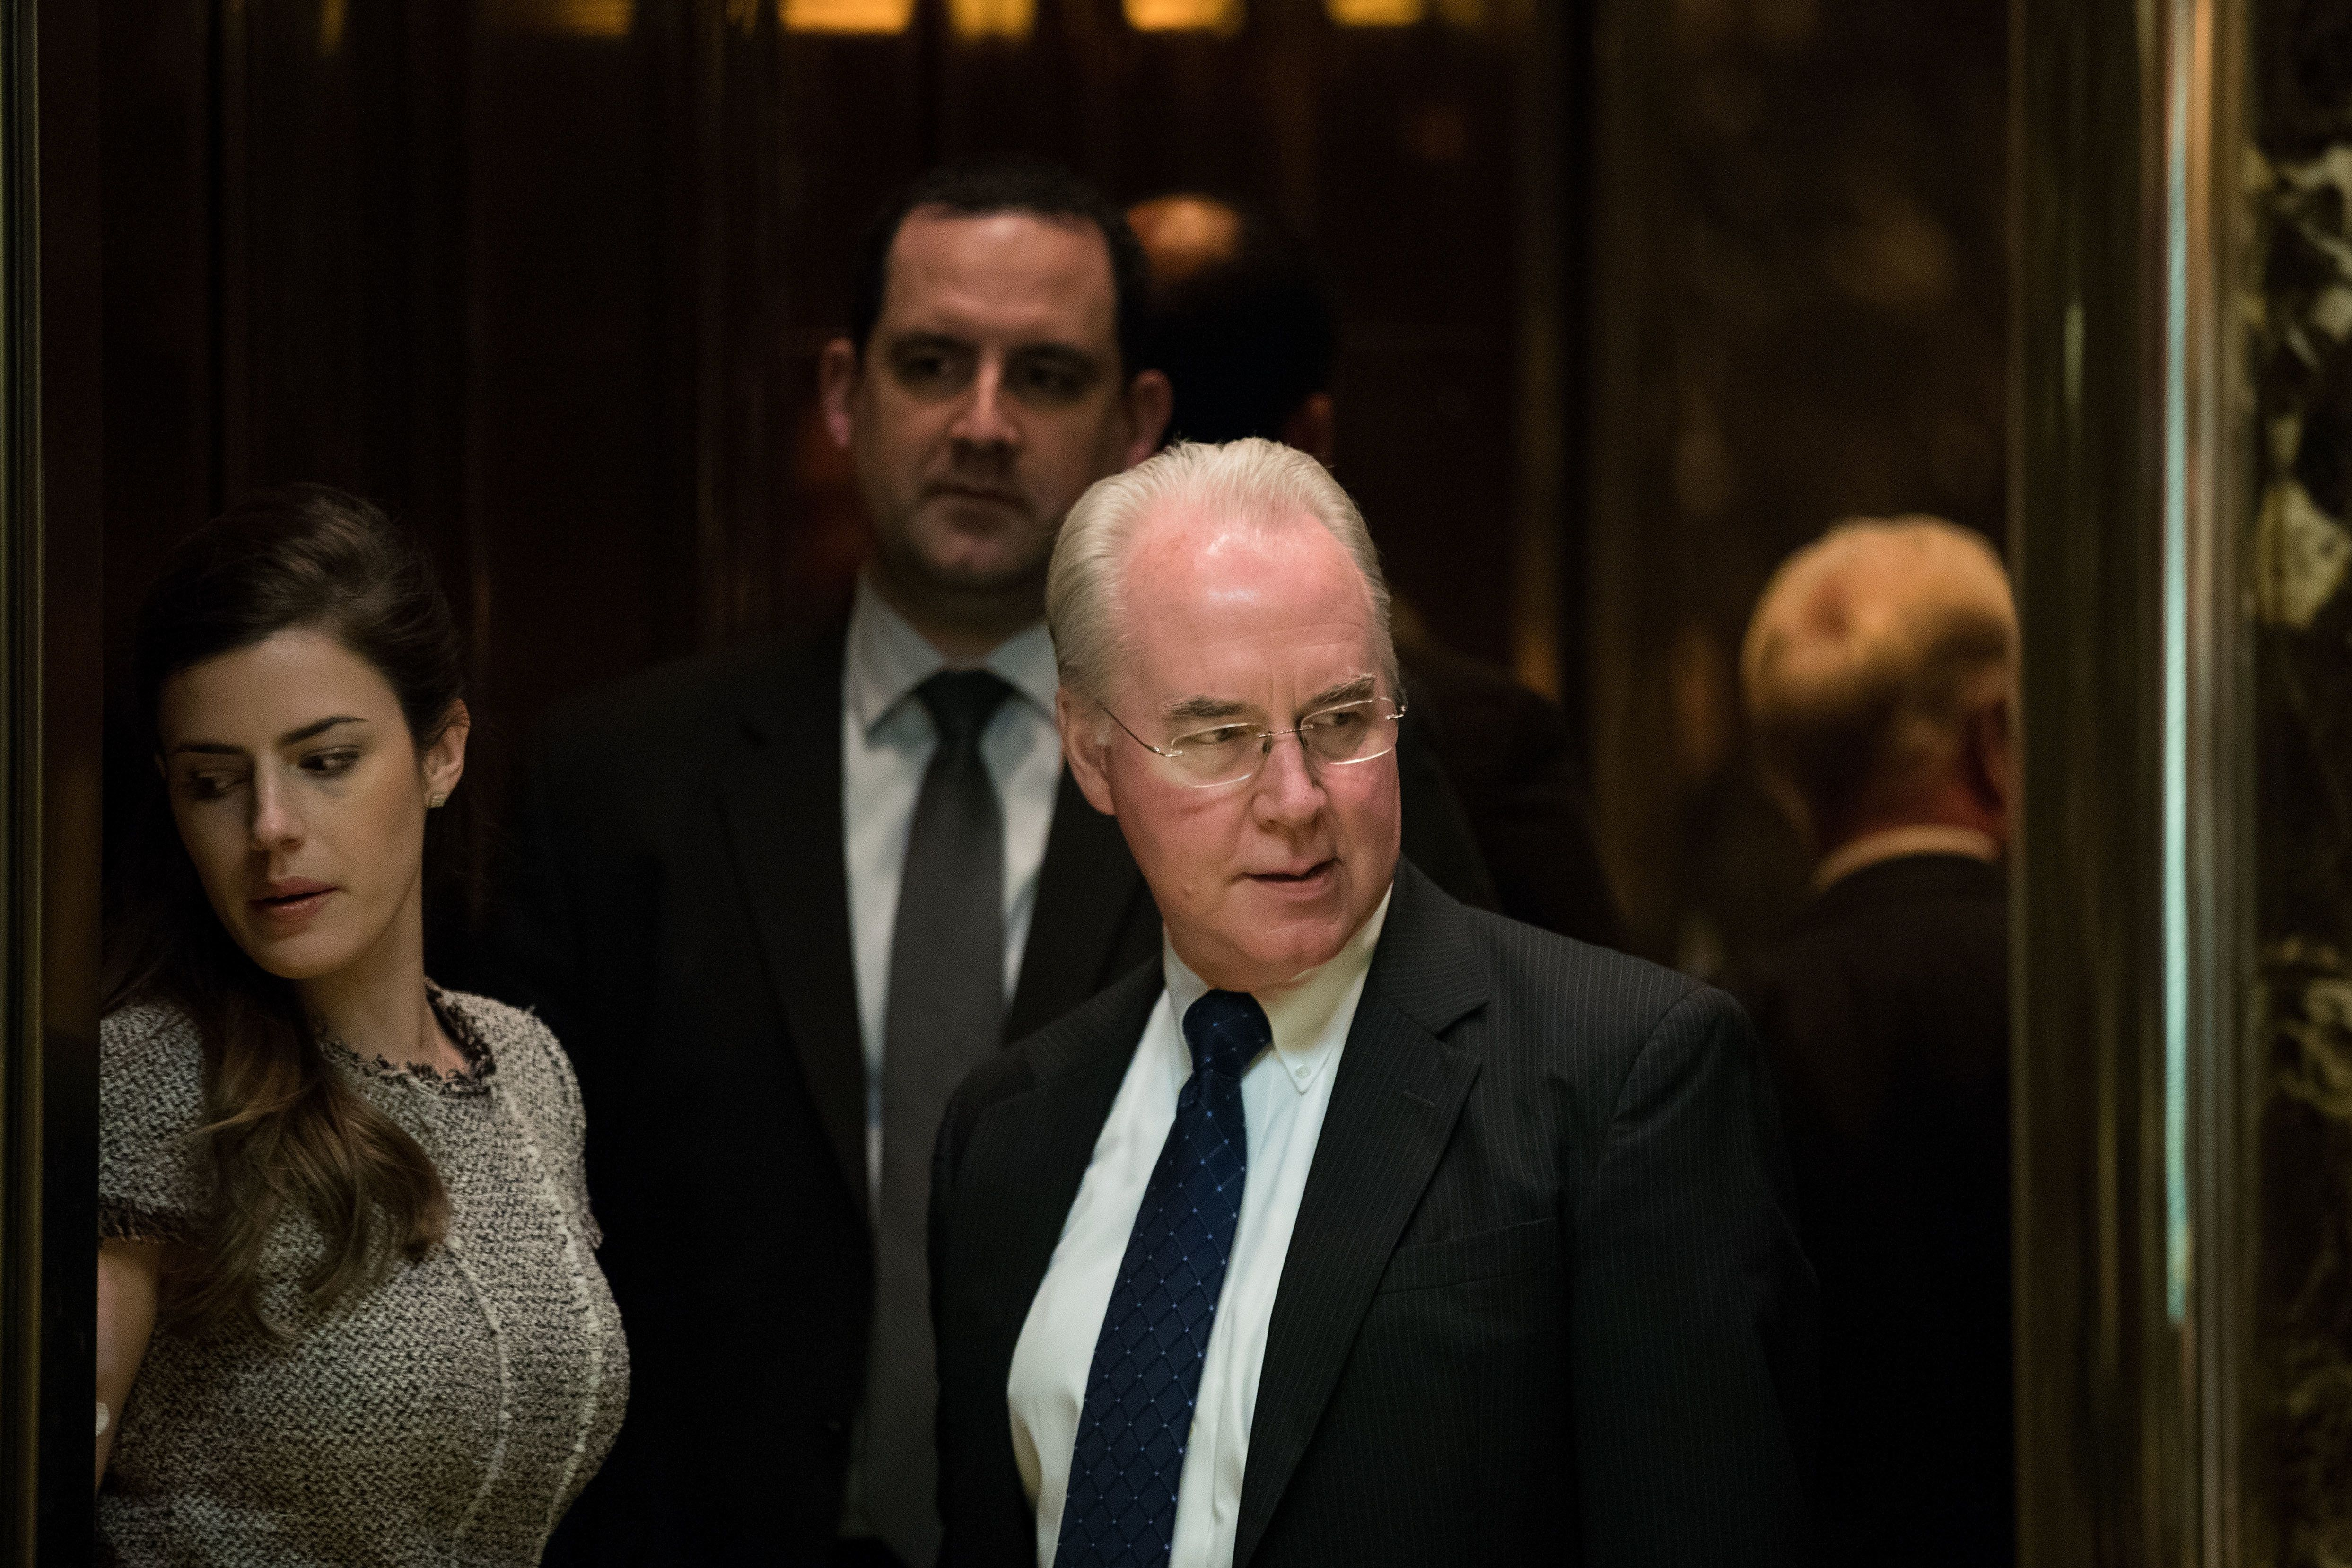 Rep. Tom Price (R-Ga.), President-elect Donald Trump's nominee to beSecretary of Health and Human Services, once said h